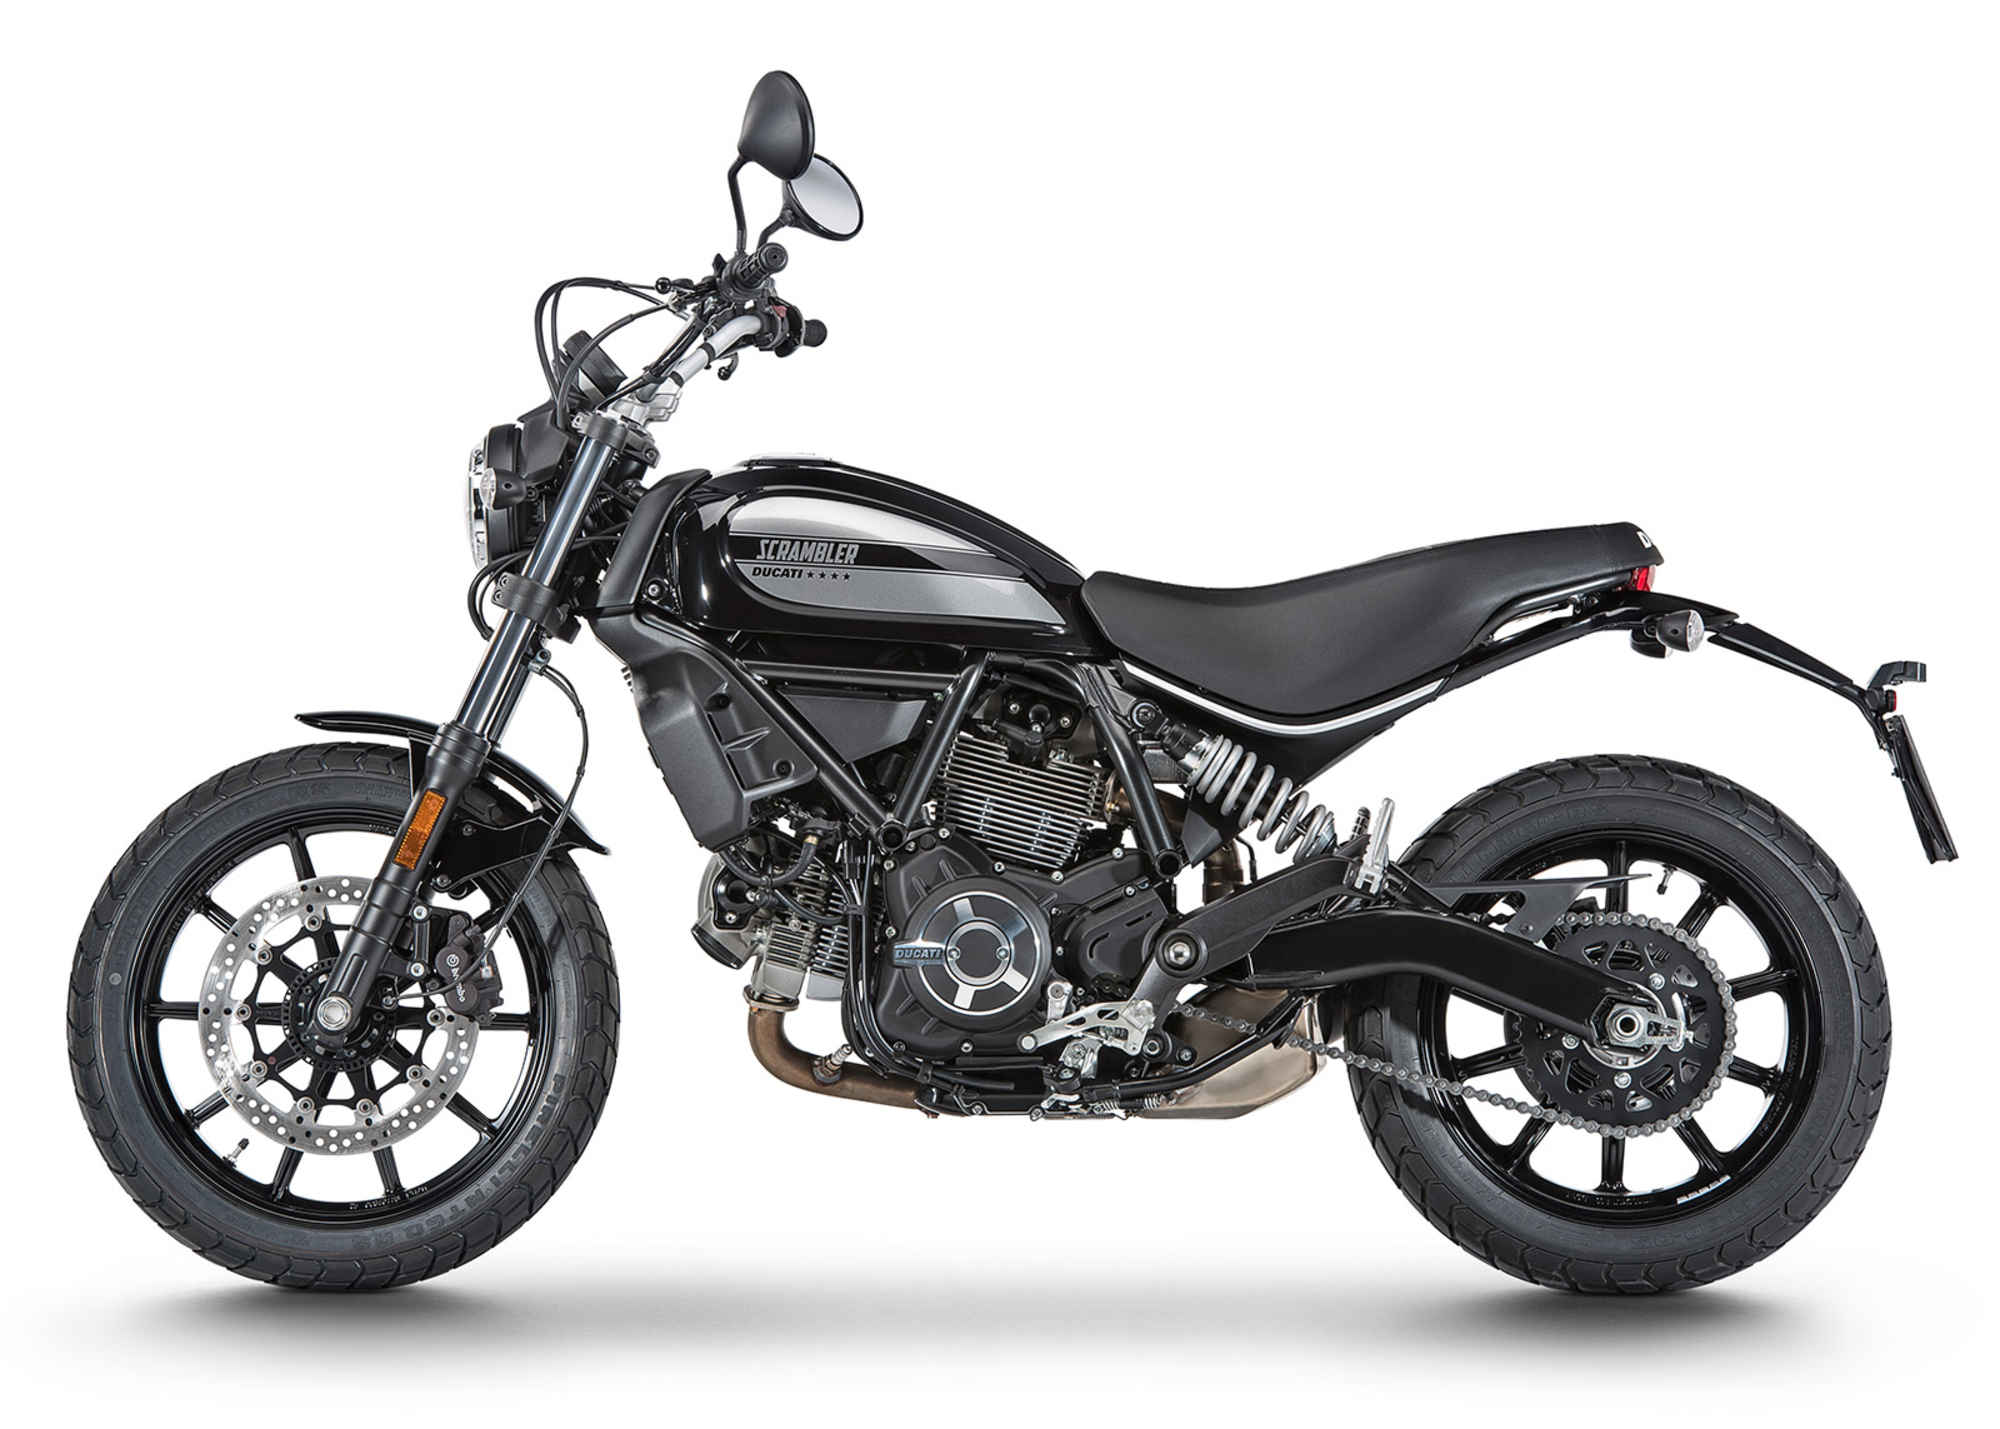 ducati scrambler 62 sixty2 for sale uk - ducati manchester